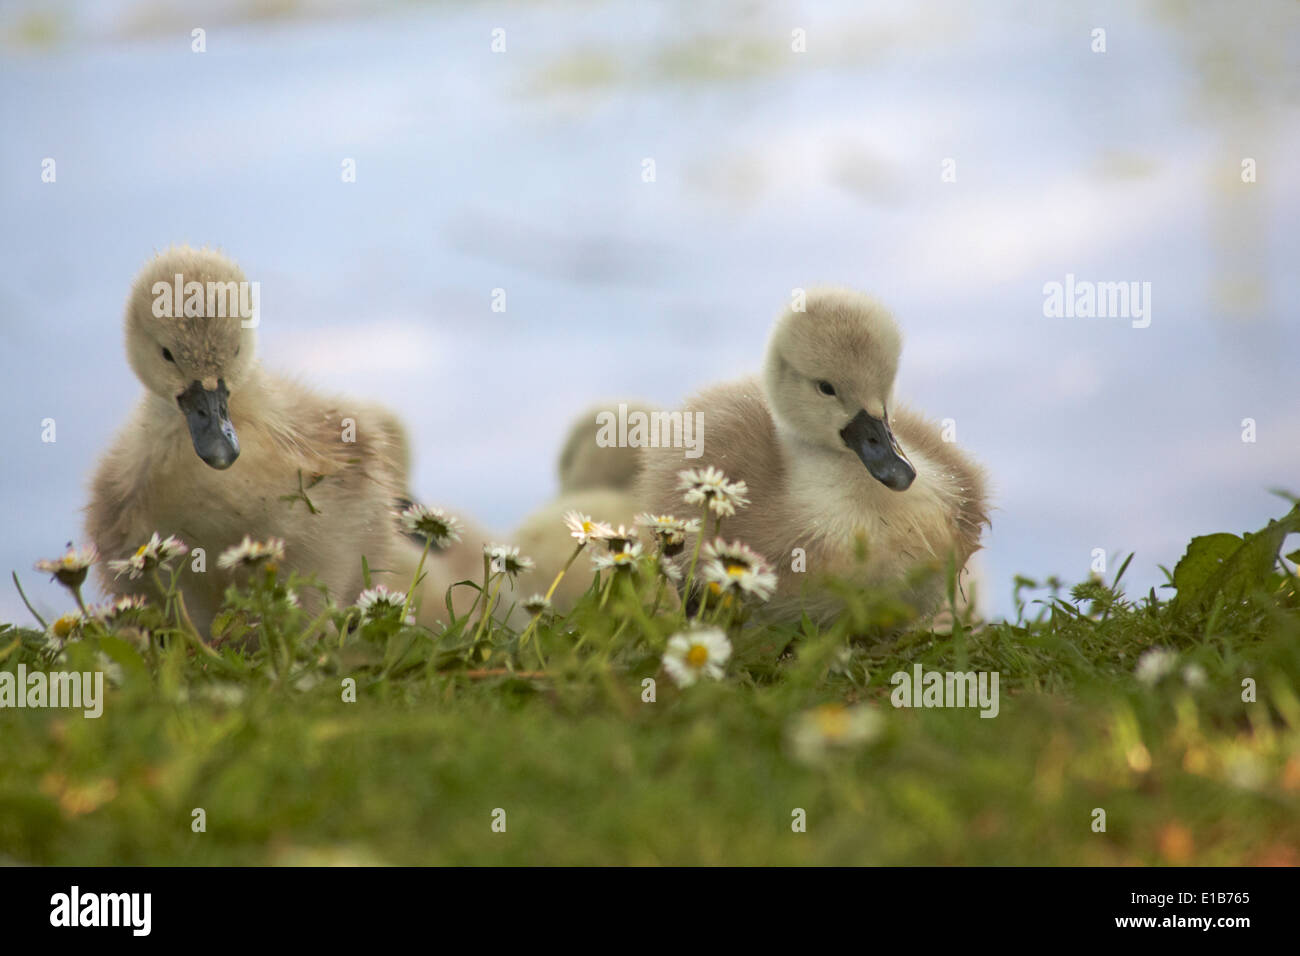 Cute fluffy cygnet cygnets, baby swans swan, walking on grass at Abbotsbury Swannery Dorset UK in May.  Mute swans Stock Photo